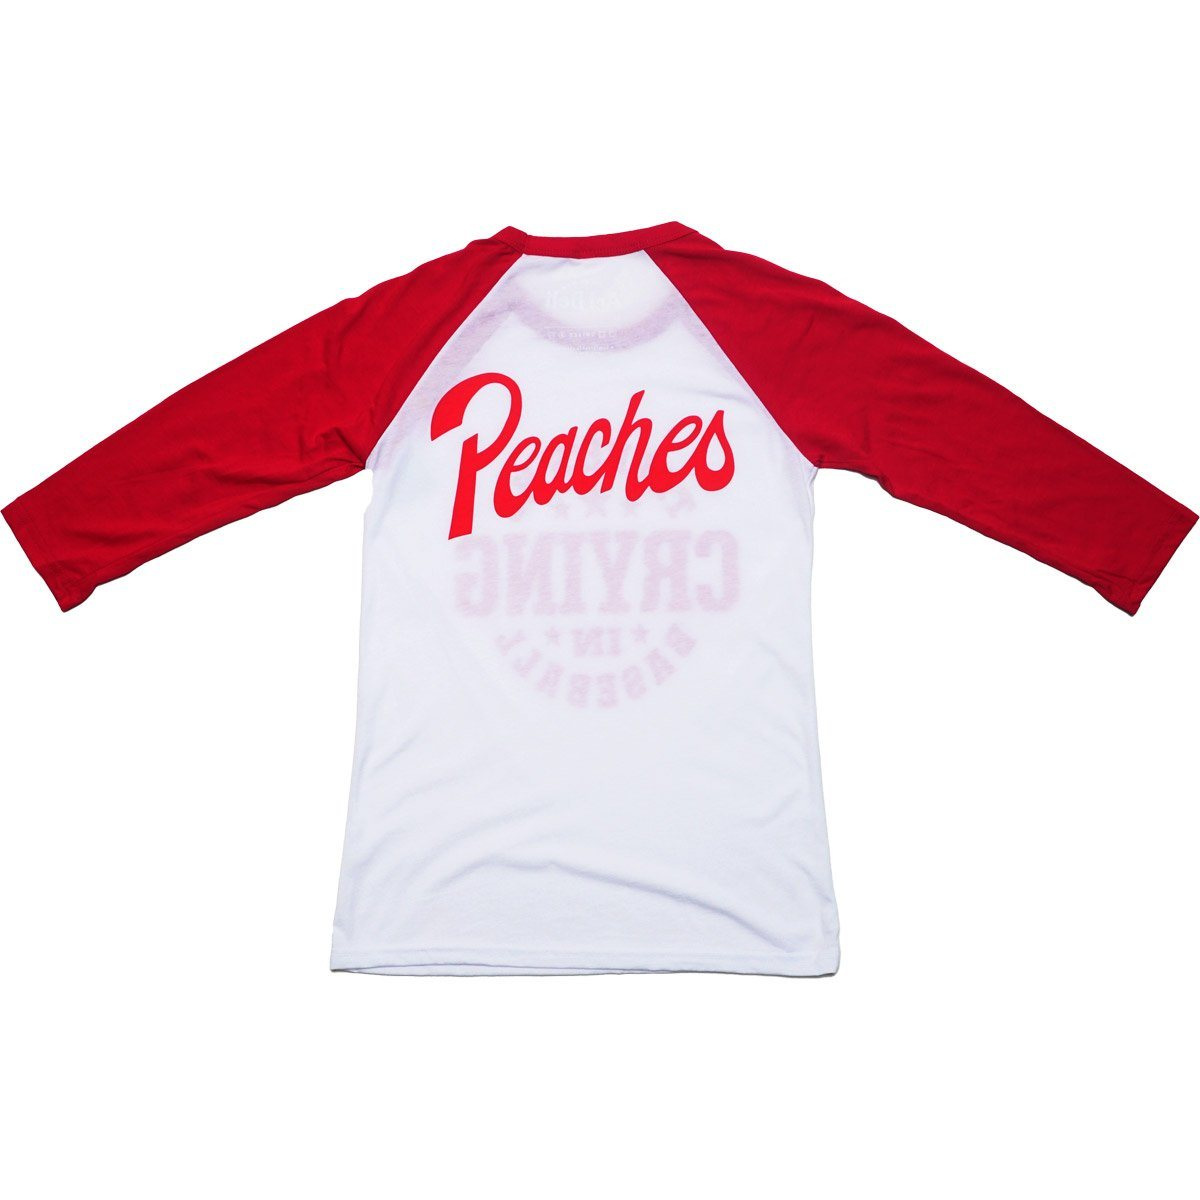 Peaches Baseball Tee T-shirt Bella + Canvas